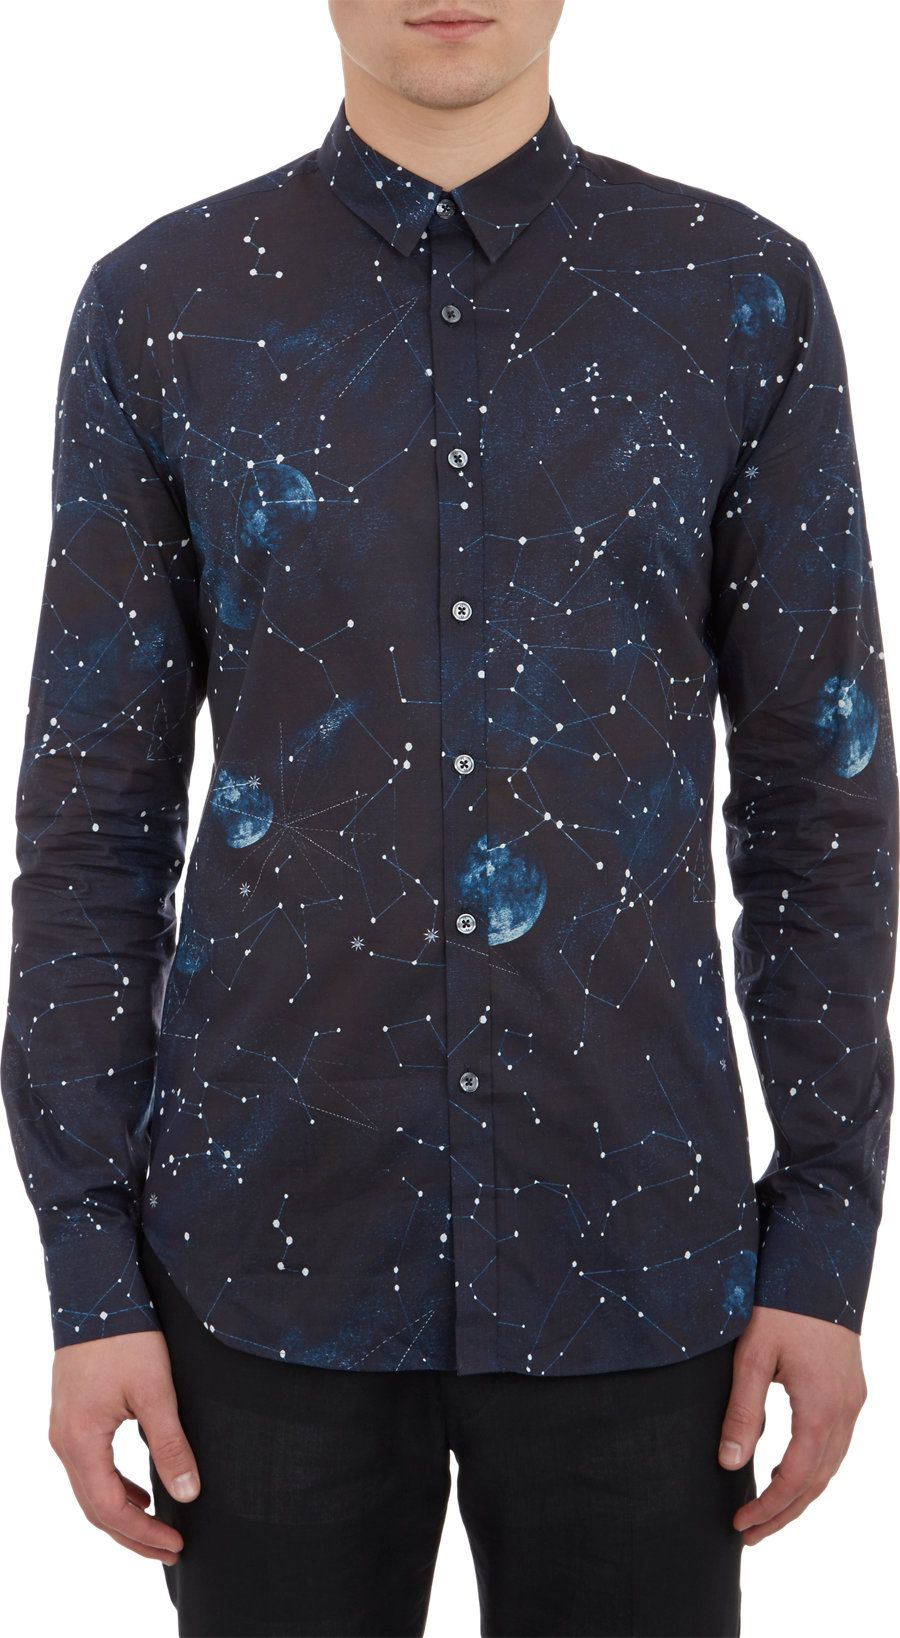 PS Paul Smith - Cosmos Print Shirt (Navy) | Cool stuff to buy ...